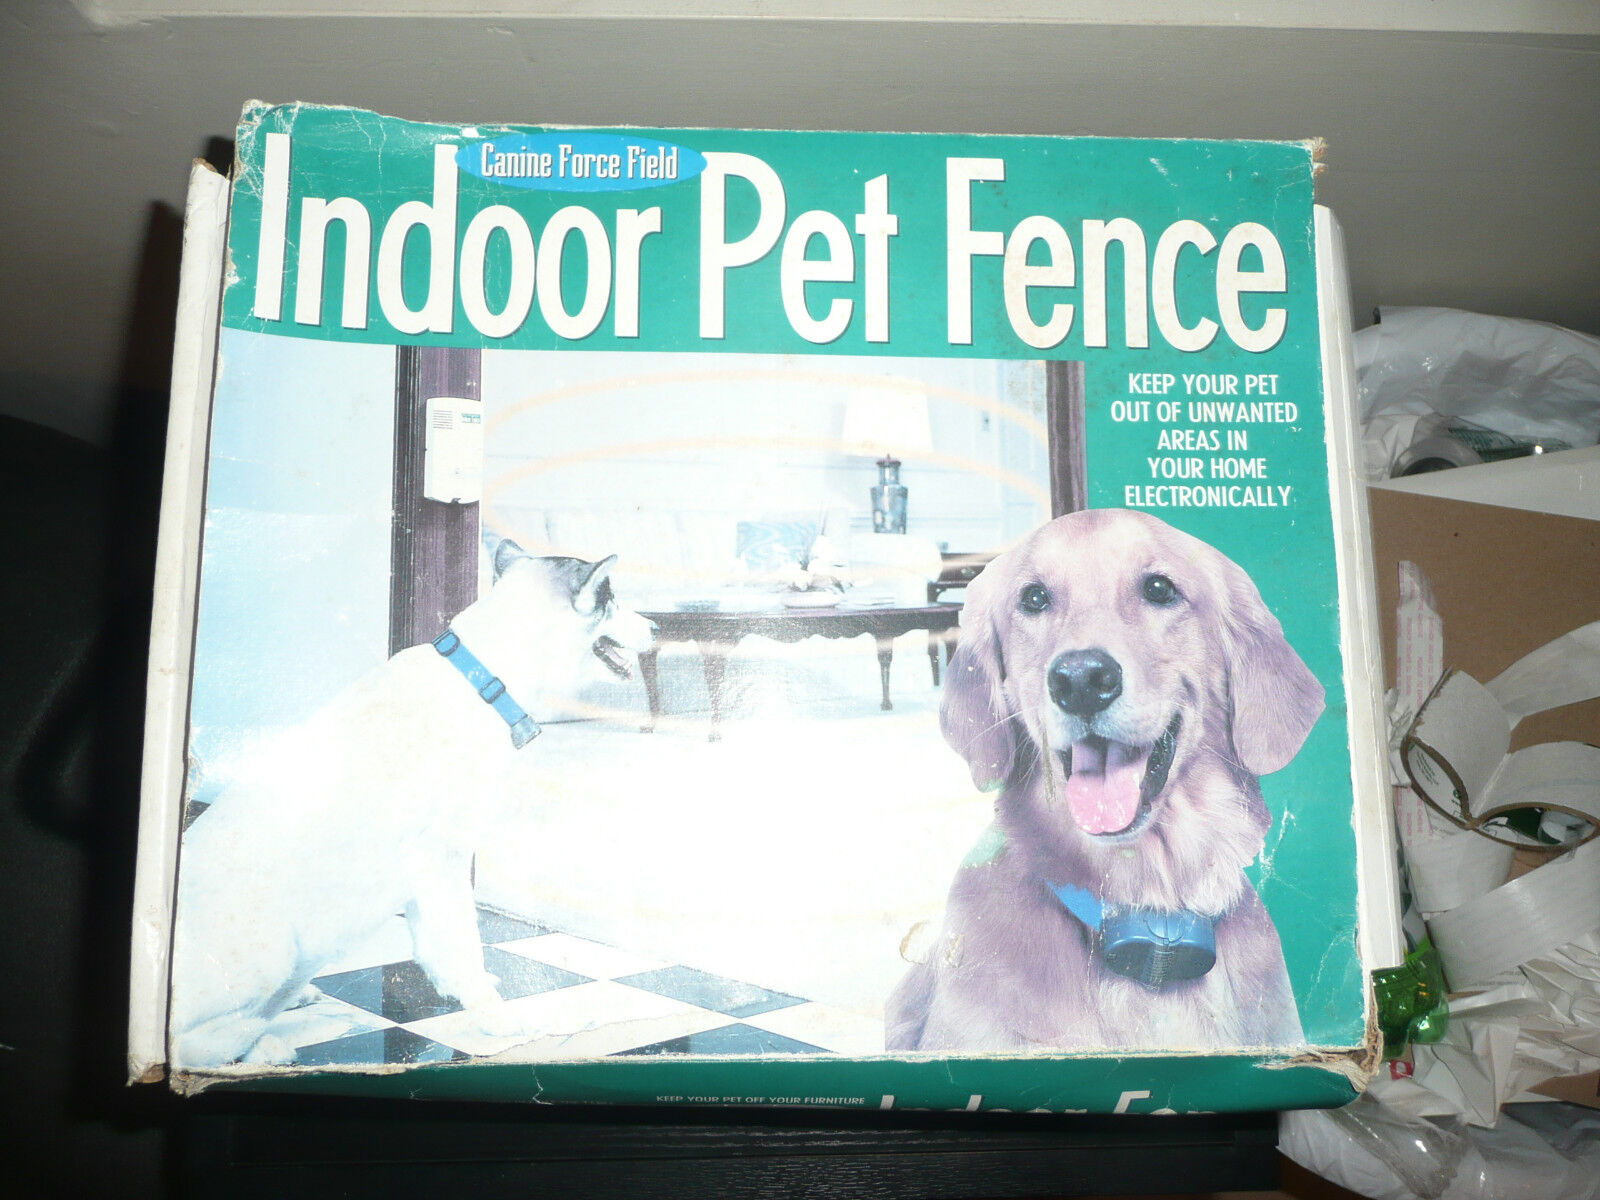 Indoor Pet Fence Canine Force Field 21st Century  New Opened Box 100% complete